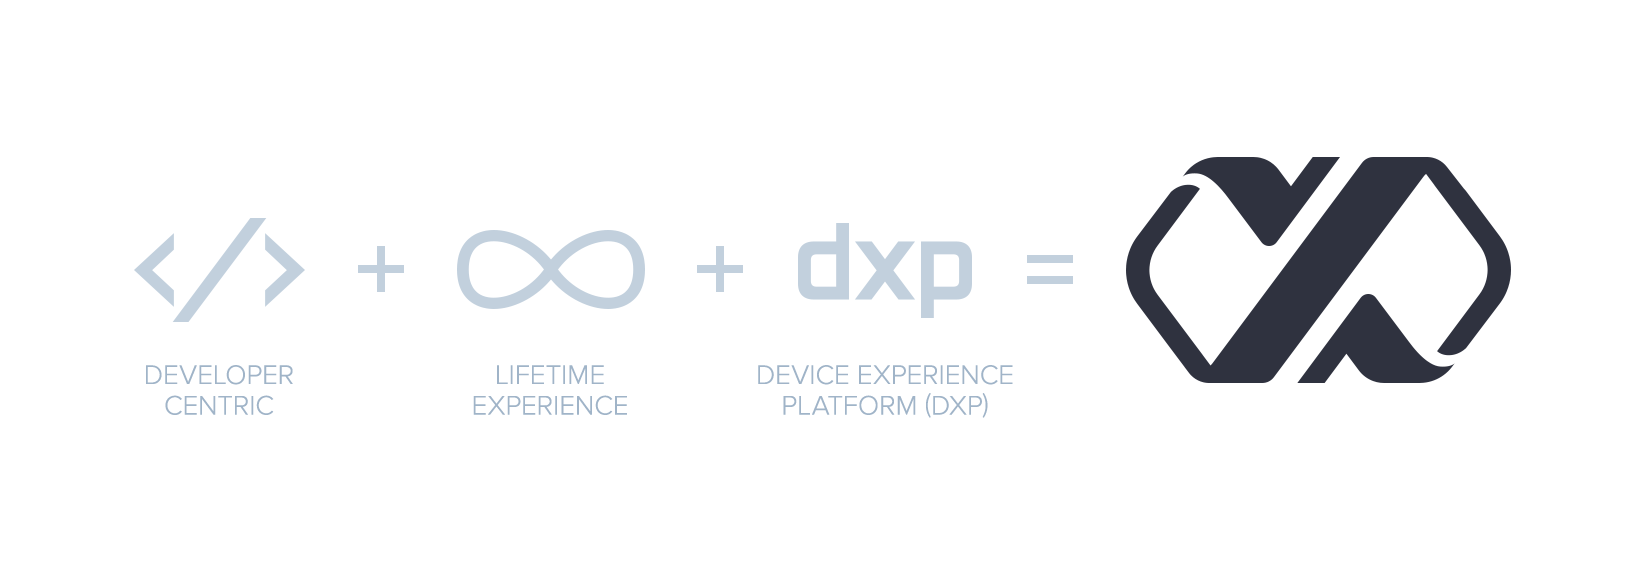 DXP Meaning